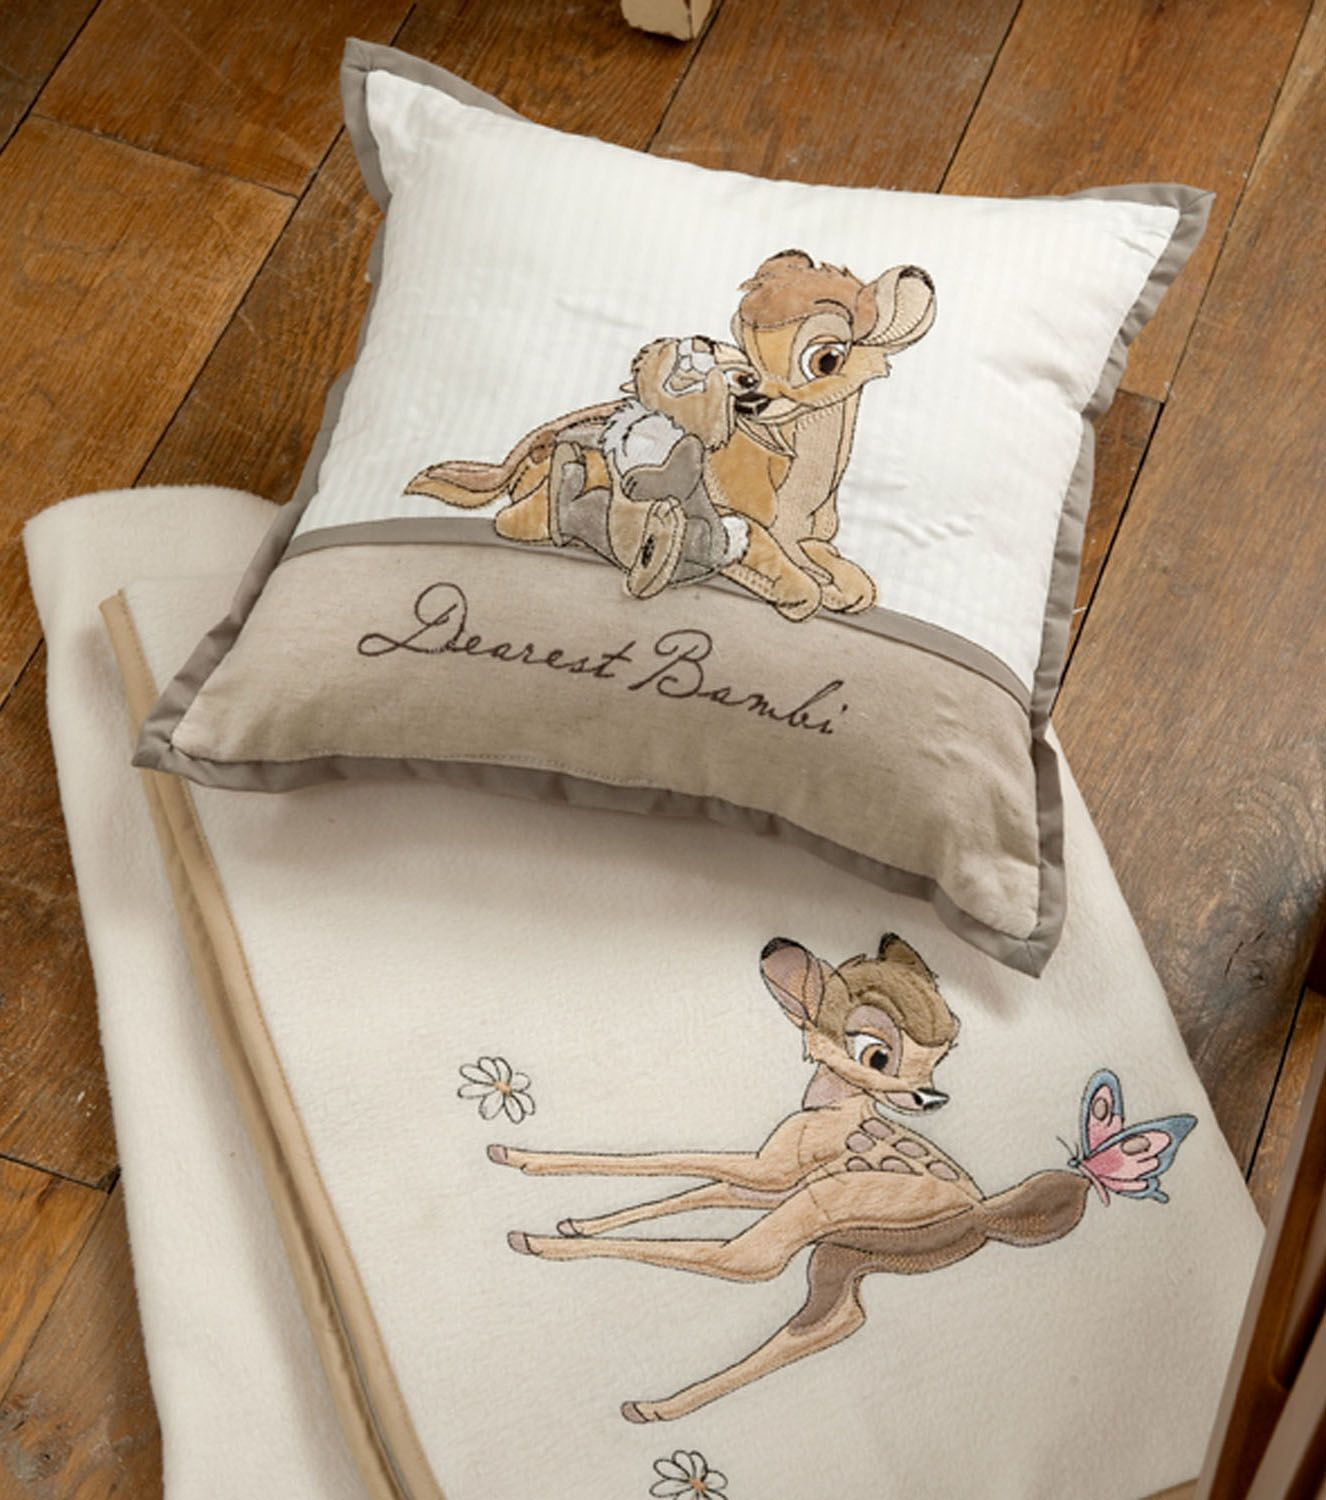 themed bedrooms for adults disney mickey mouse bedroom.htm disney bambi cushion www worldstores co uk p  disney bambi cushion www